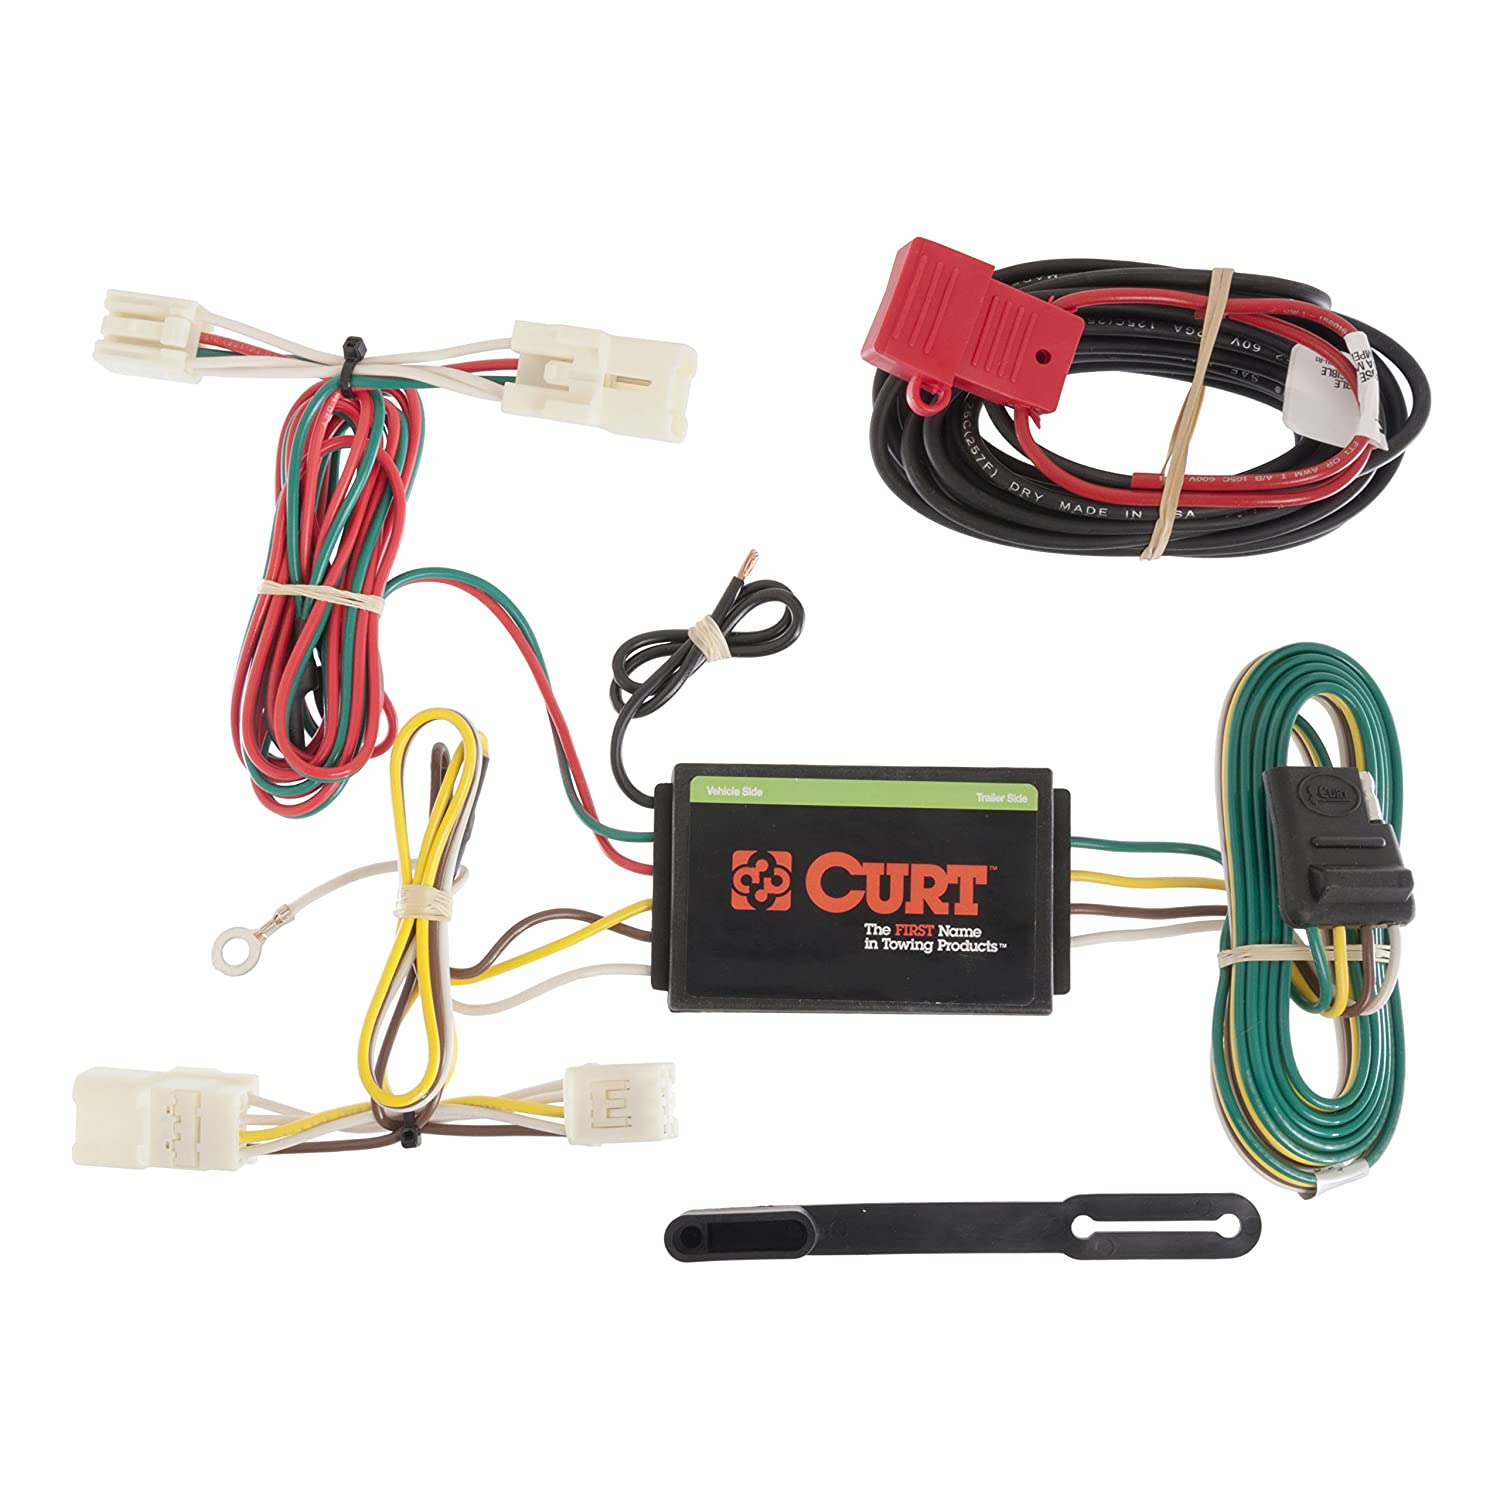 Amazon.com: CURT 56165 Custom Wiring Harness: Automotive on 4 pin spark plugs, 4 pin light bulbs, 4 pin power supply, 4 pin ignition module,